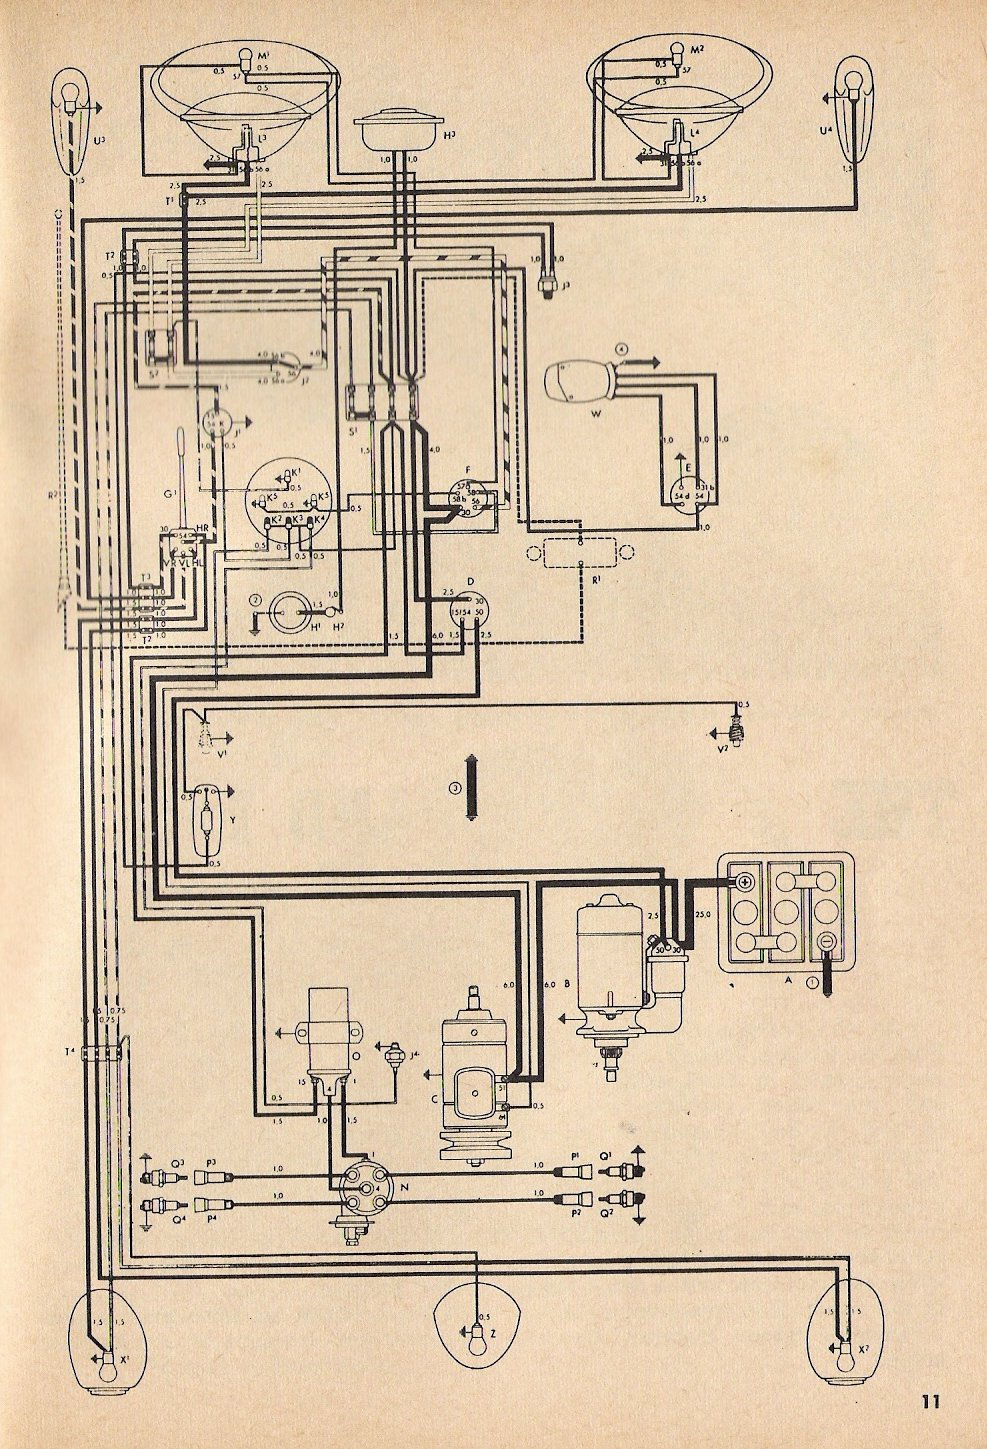 Type 1 Wiring Diagrams Harness For 49 Ford F1 Free Download Diagram Schematic